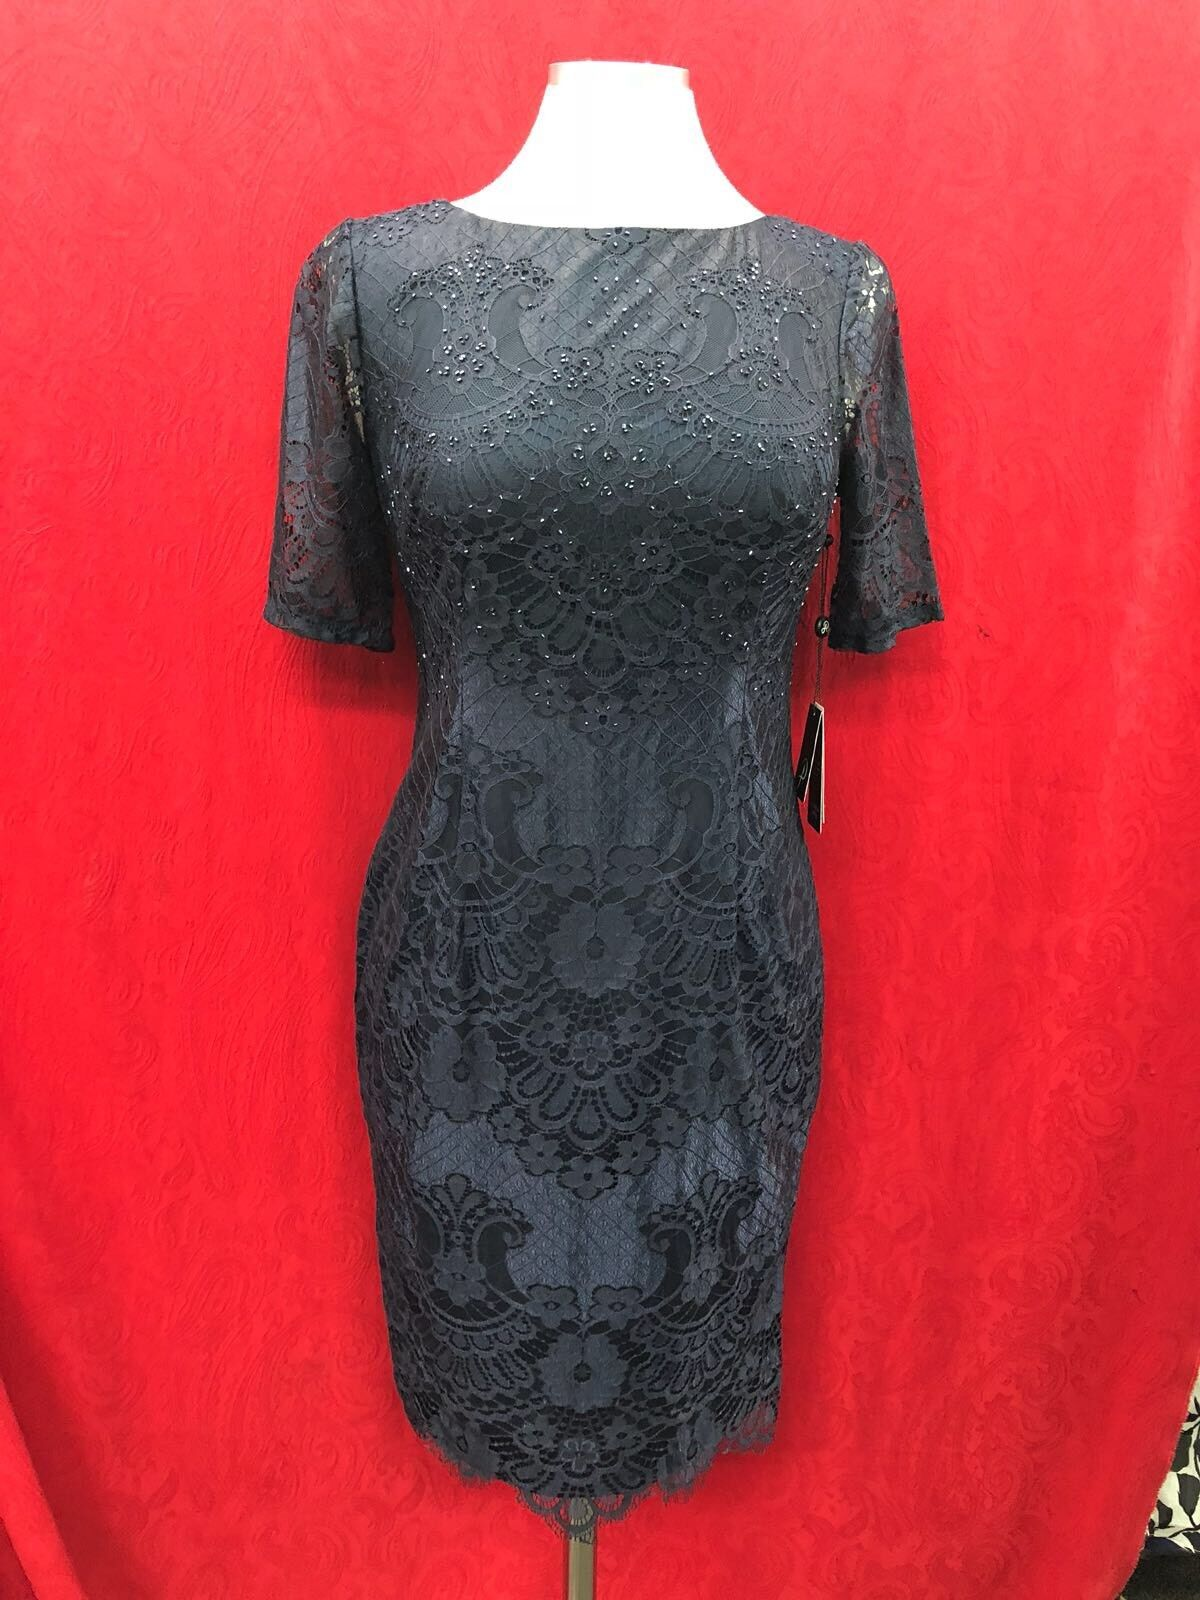 ADRIANNA PAPELL DRESS NAVY Größe 4 LENGTH 37' RETAIL NEW WITH TAG LINED